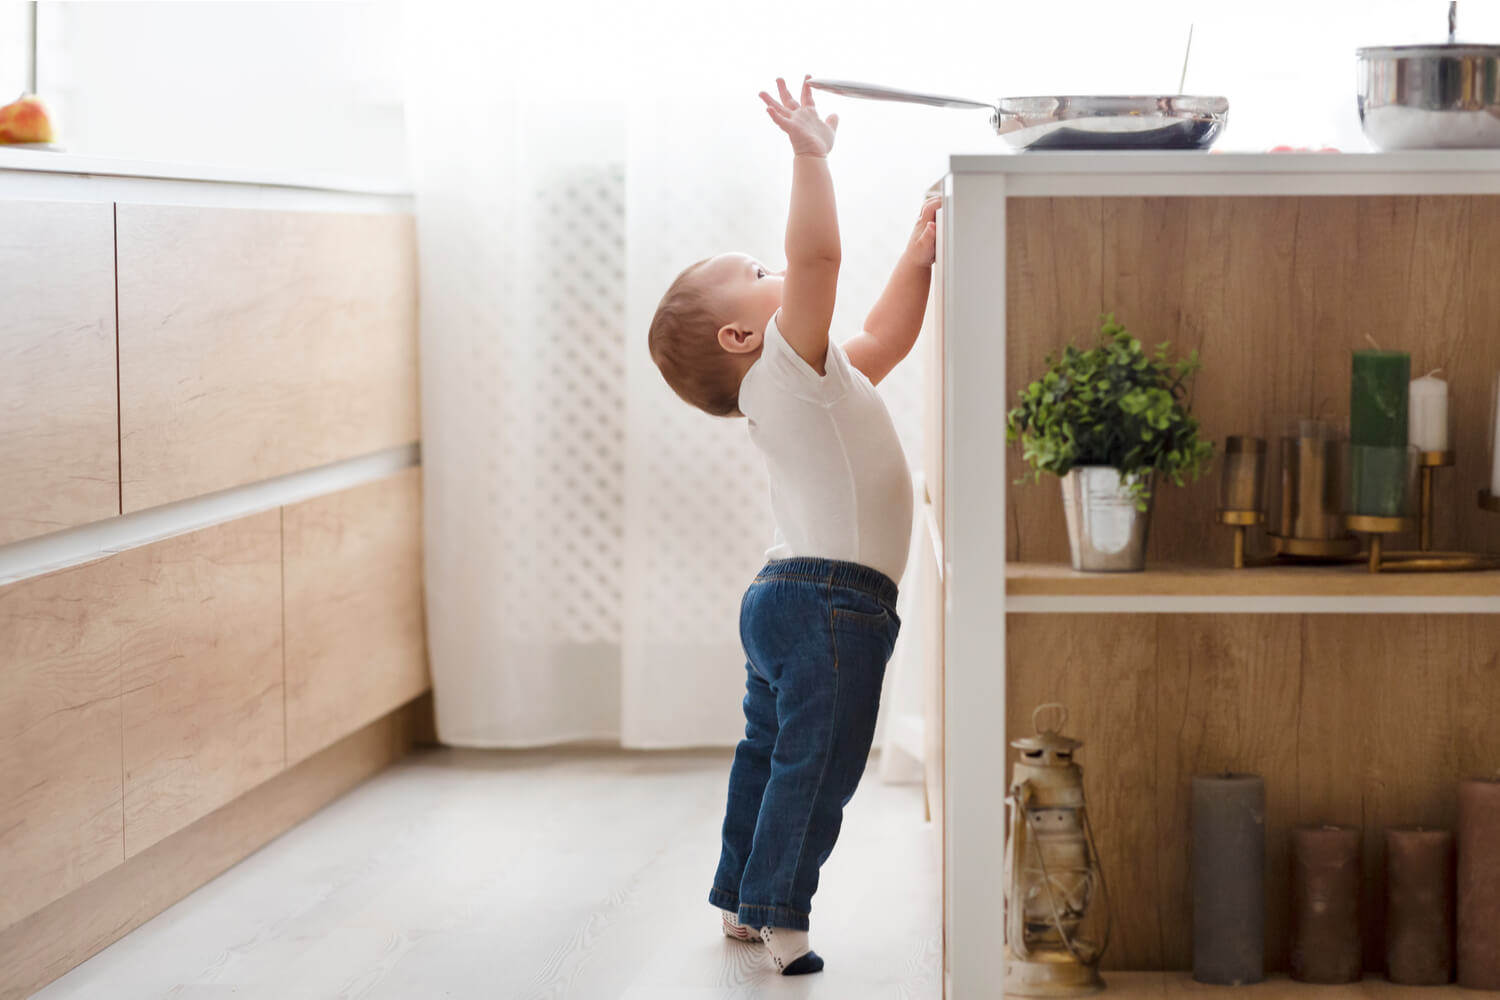 baby trying to reach hot pan